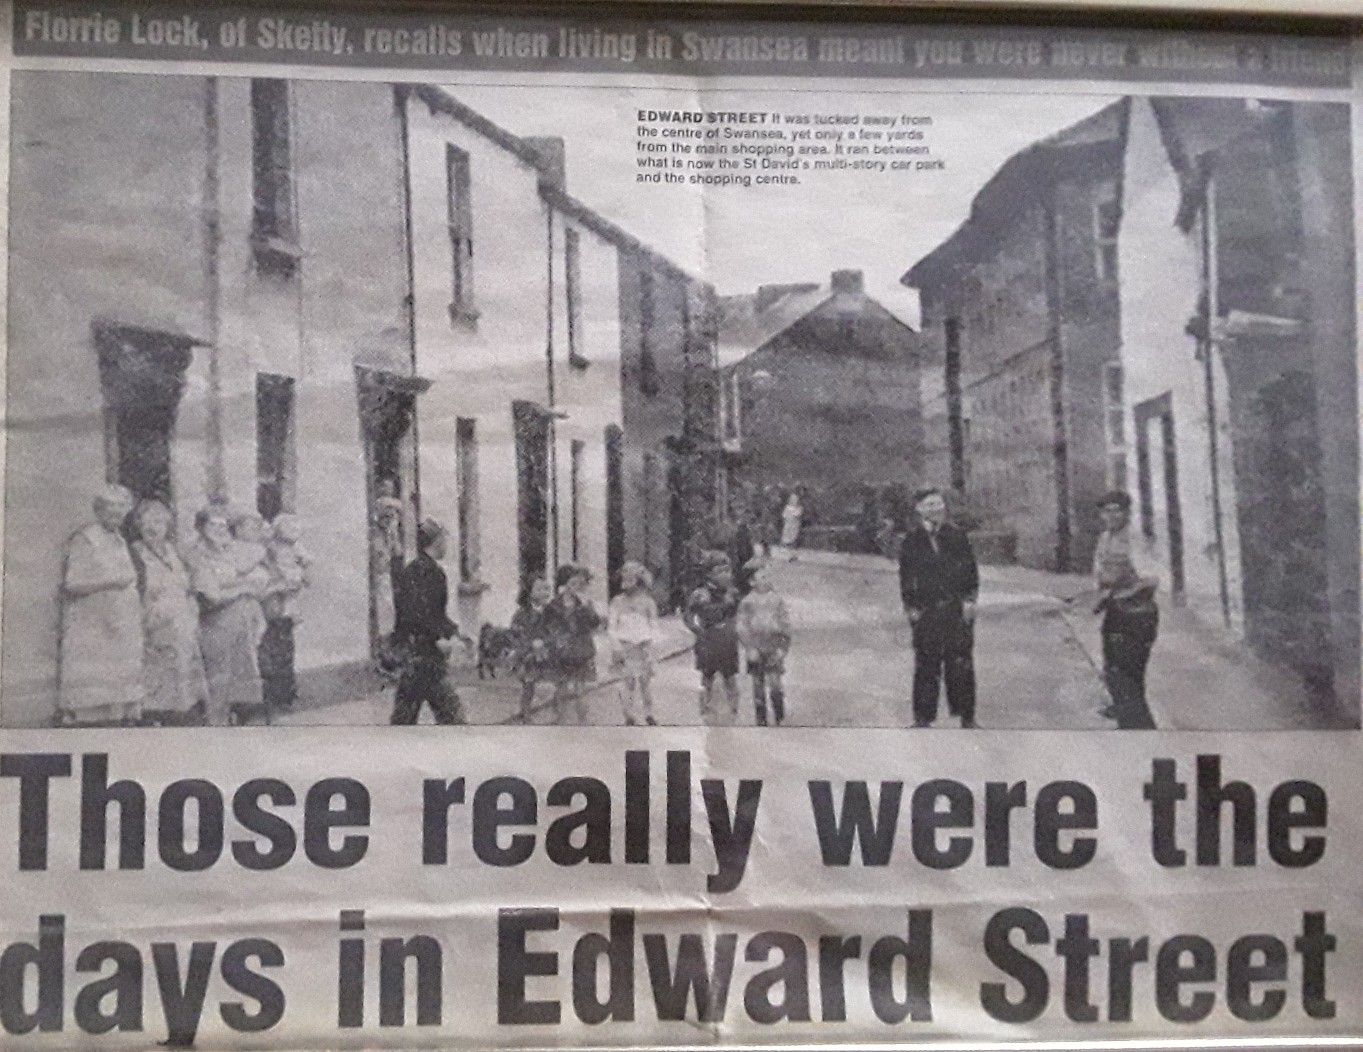 Edward St Swansea Now Long Gone It Was On The Site Of What Is Now St David S Multi Story Car Park 1940s My Mum Lived There As A Child With Images Swansea